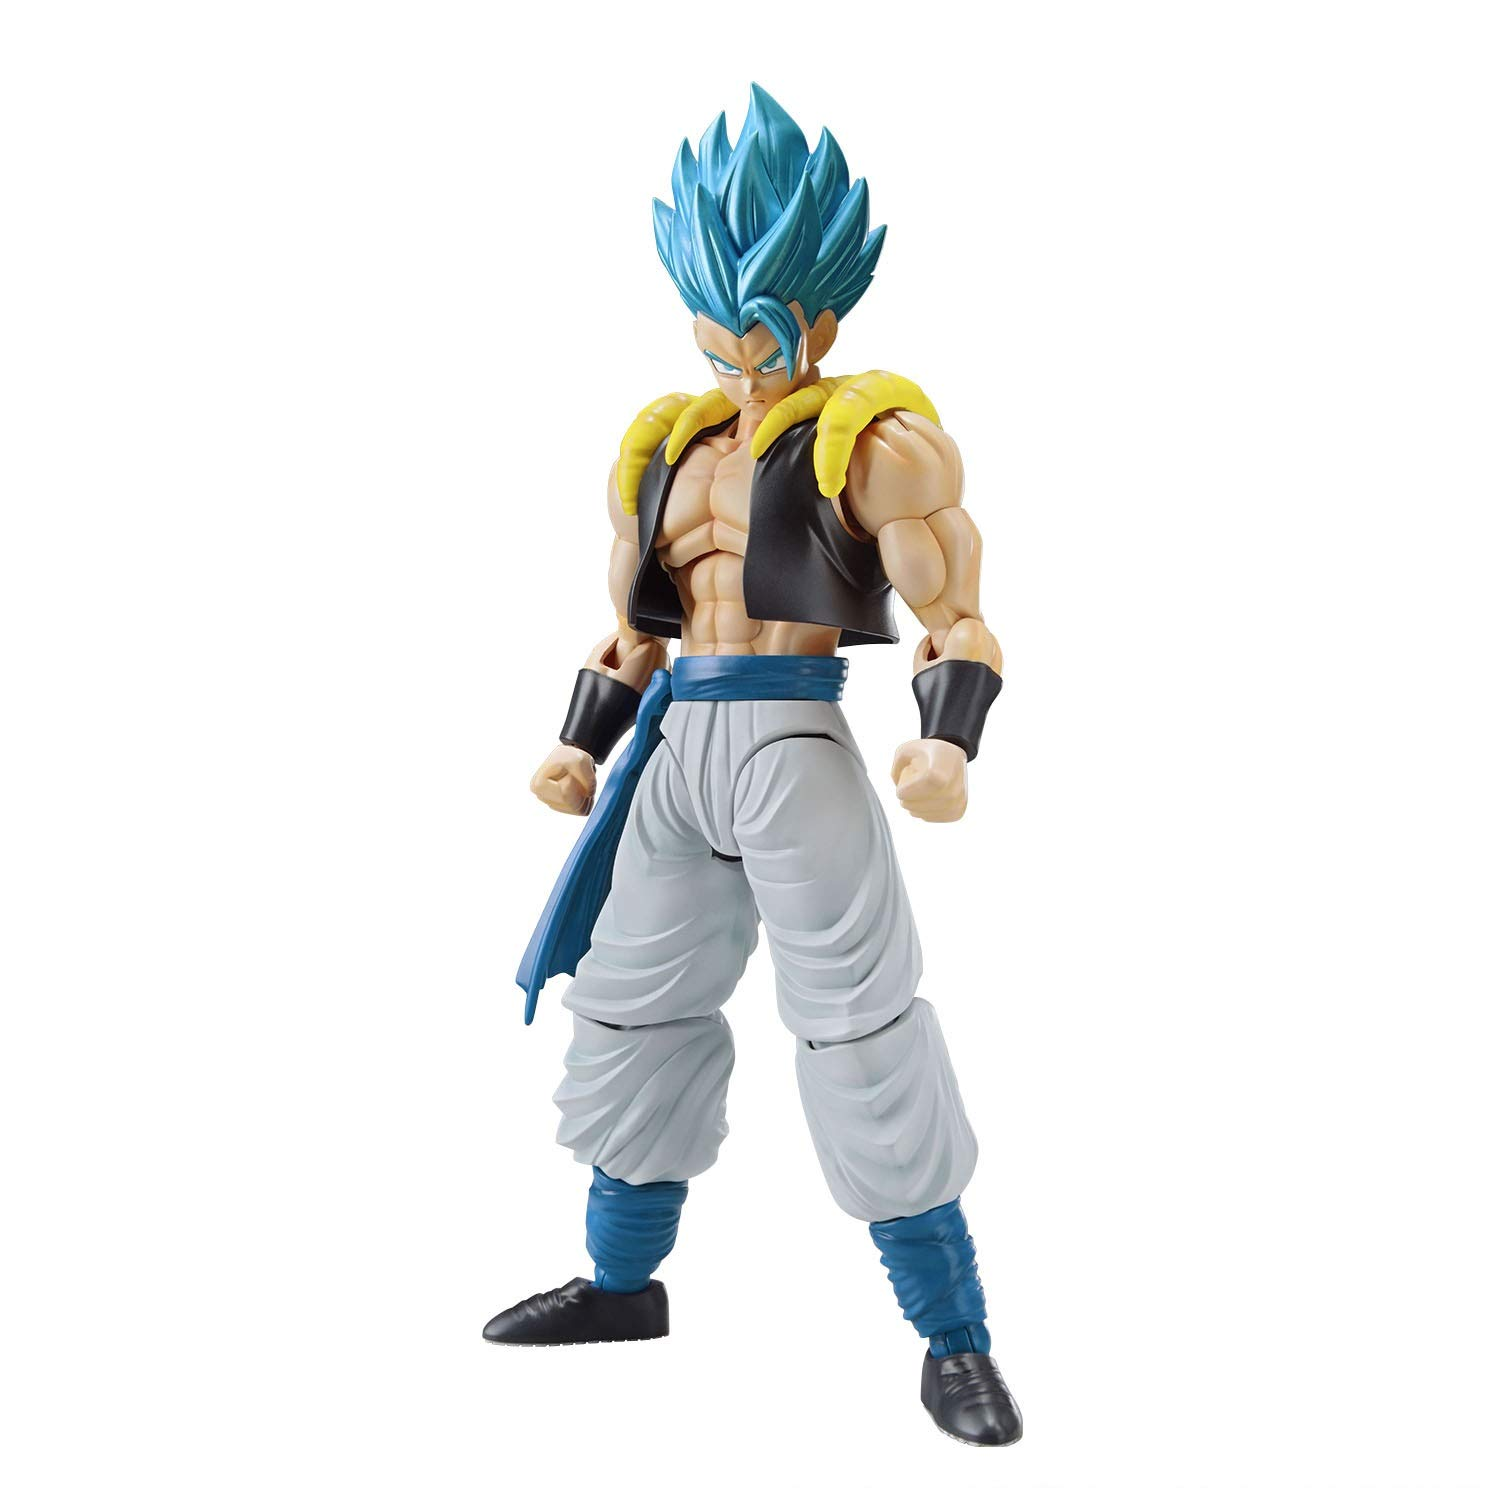 Bandai Hobby Figure-Rise Standard Super Saiyan God Super Saiyan Gogeta Dragon Ball Super